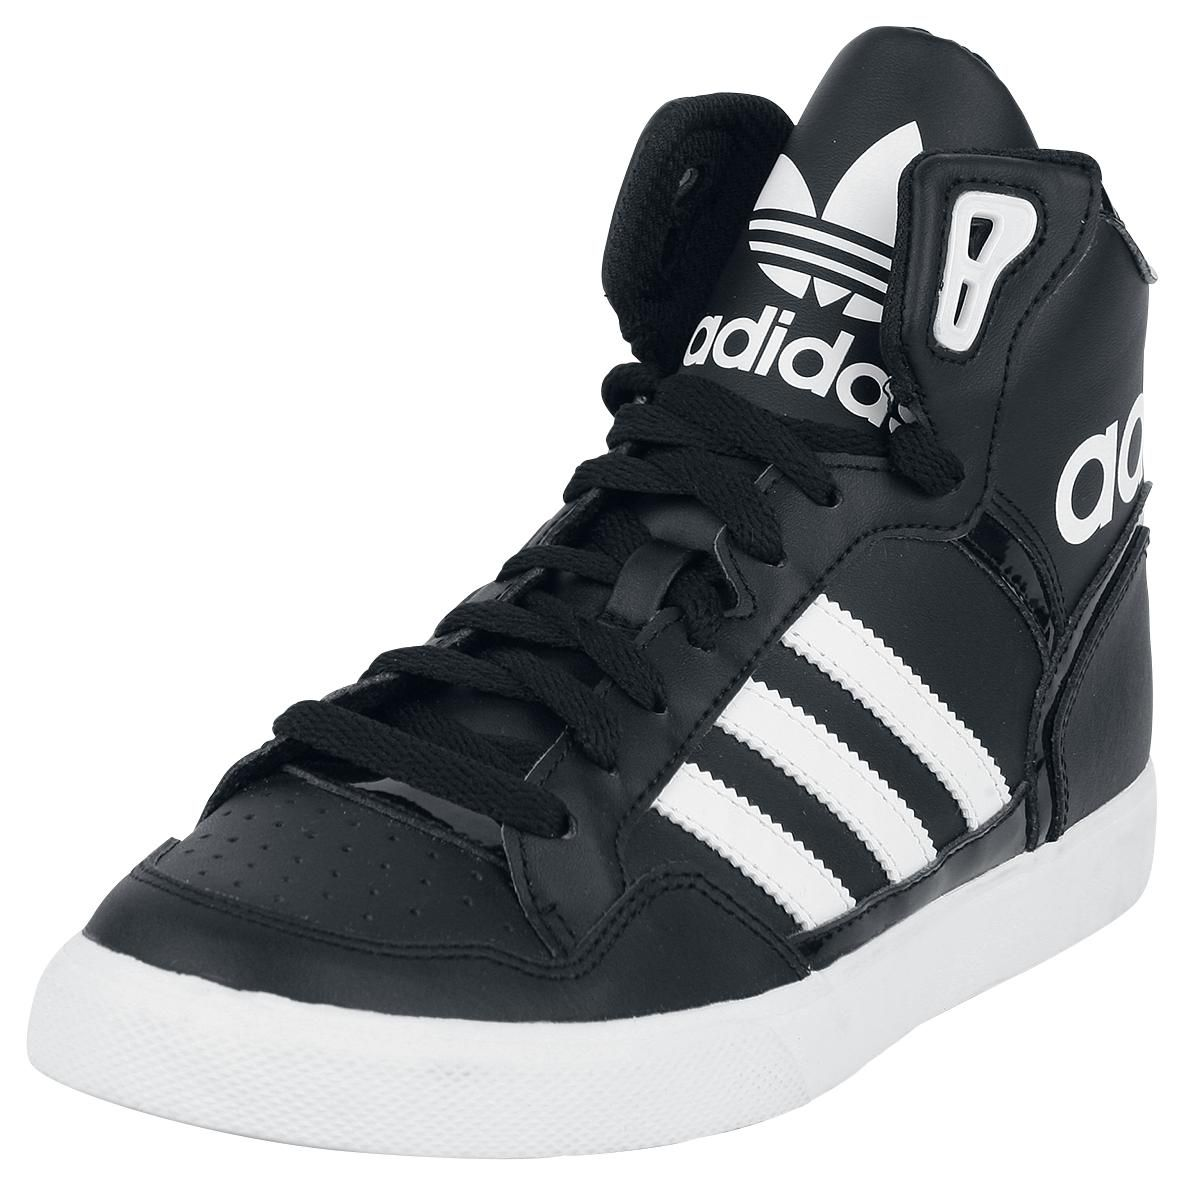 Adidas Sneaker high, Frauen